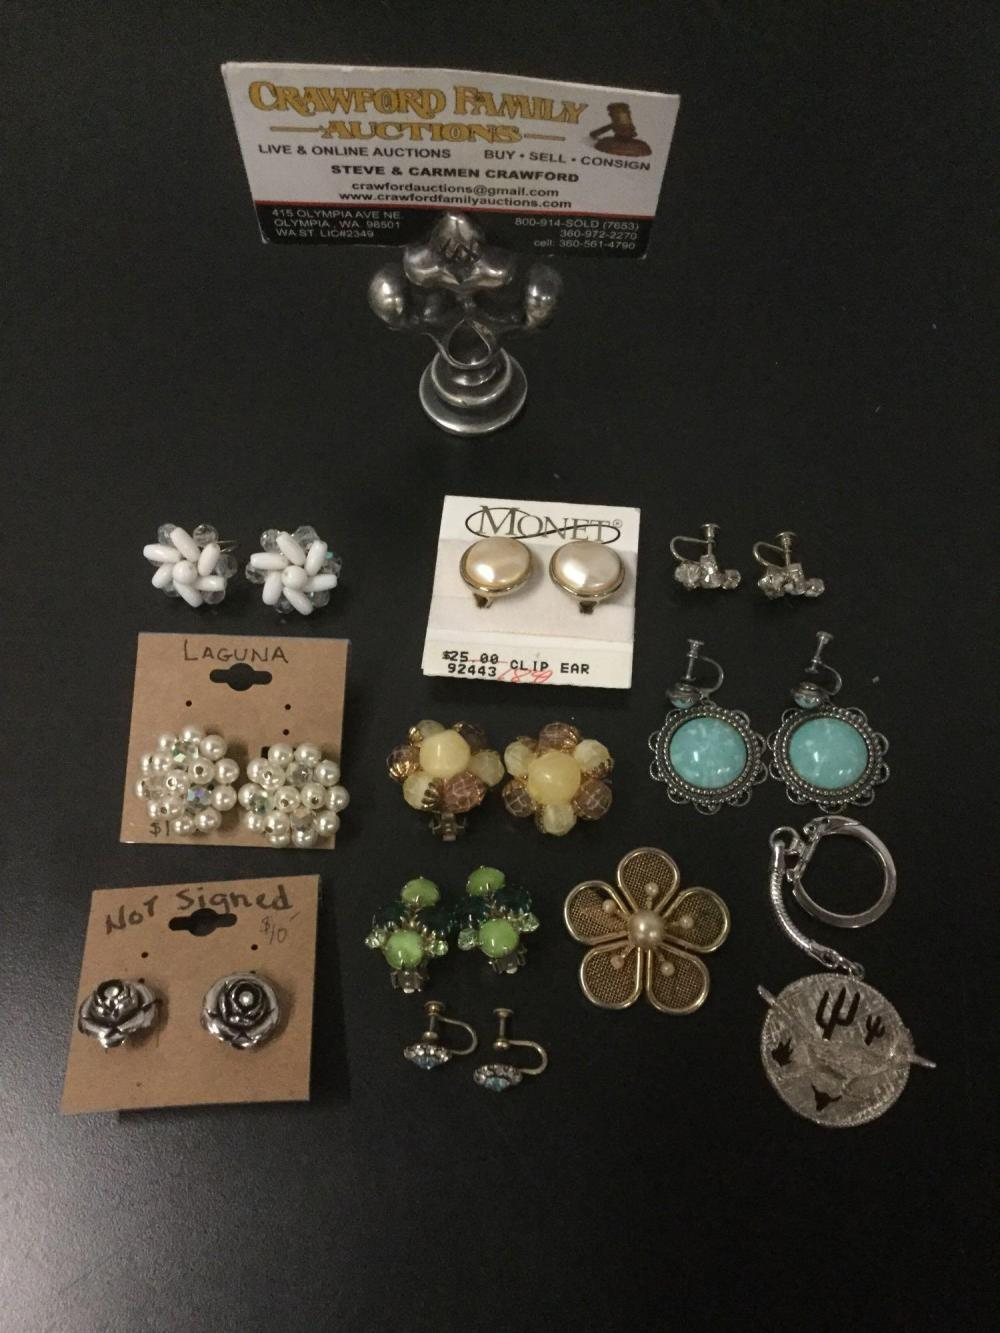 Lot 169: 10 pieces of vintage and modern costume jewelry earrings & one roadrunner keychain